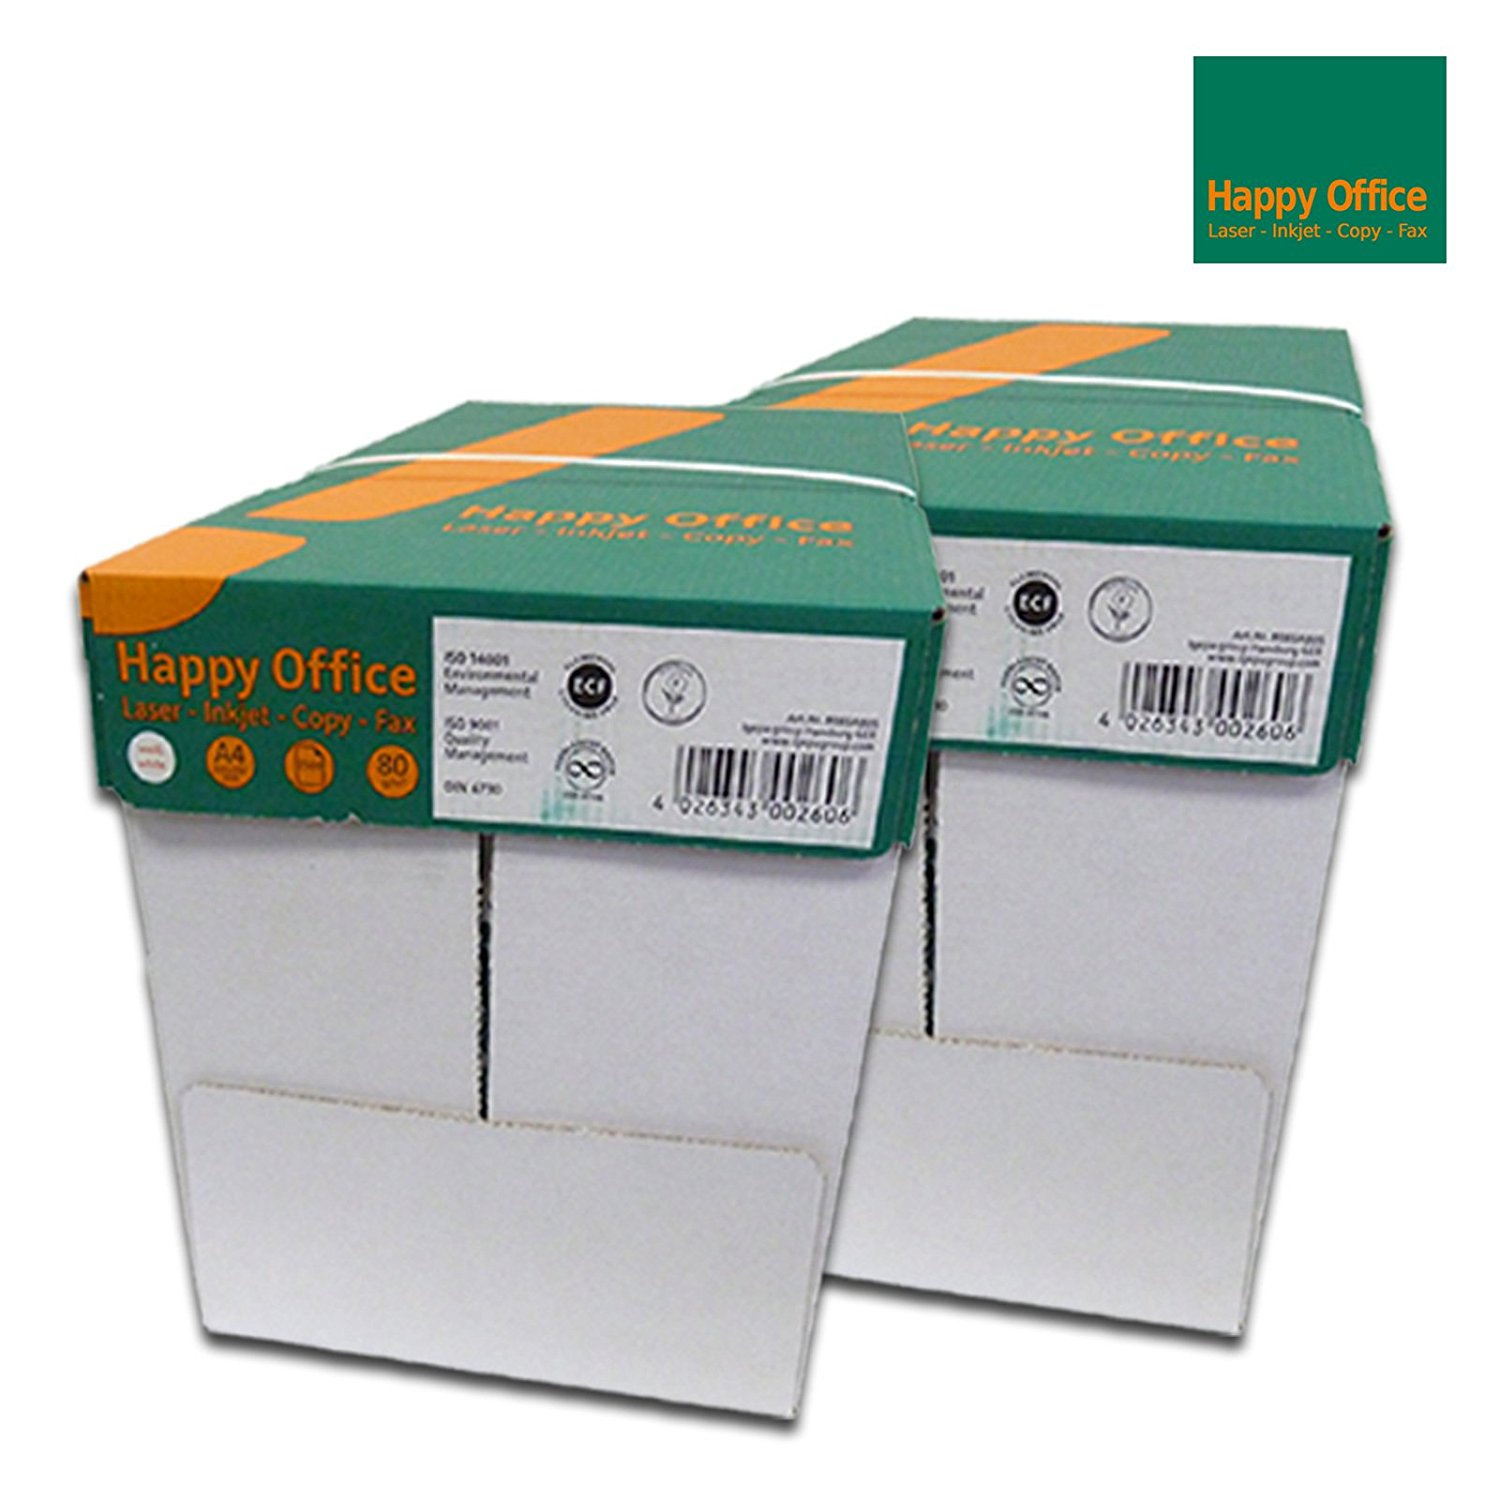 Happy Office Kopierpapier 5000 Blatt 80g/m² DIN-A4 weiß